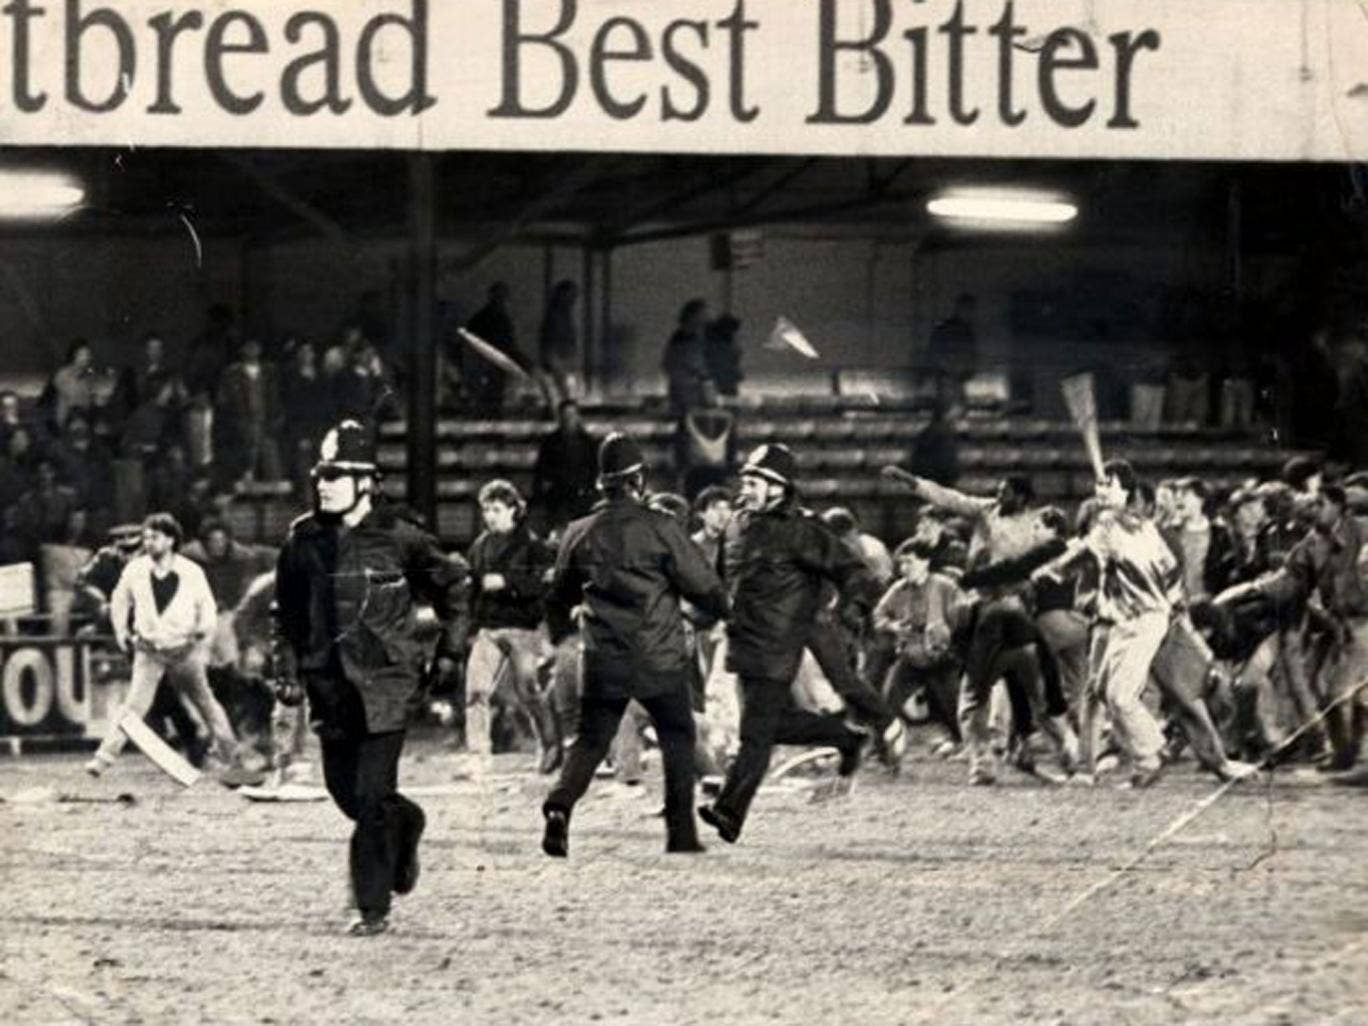 Millwall fans storm past police officers and on to the pitch at Kenilworth Road in 1985